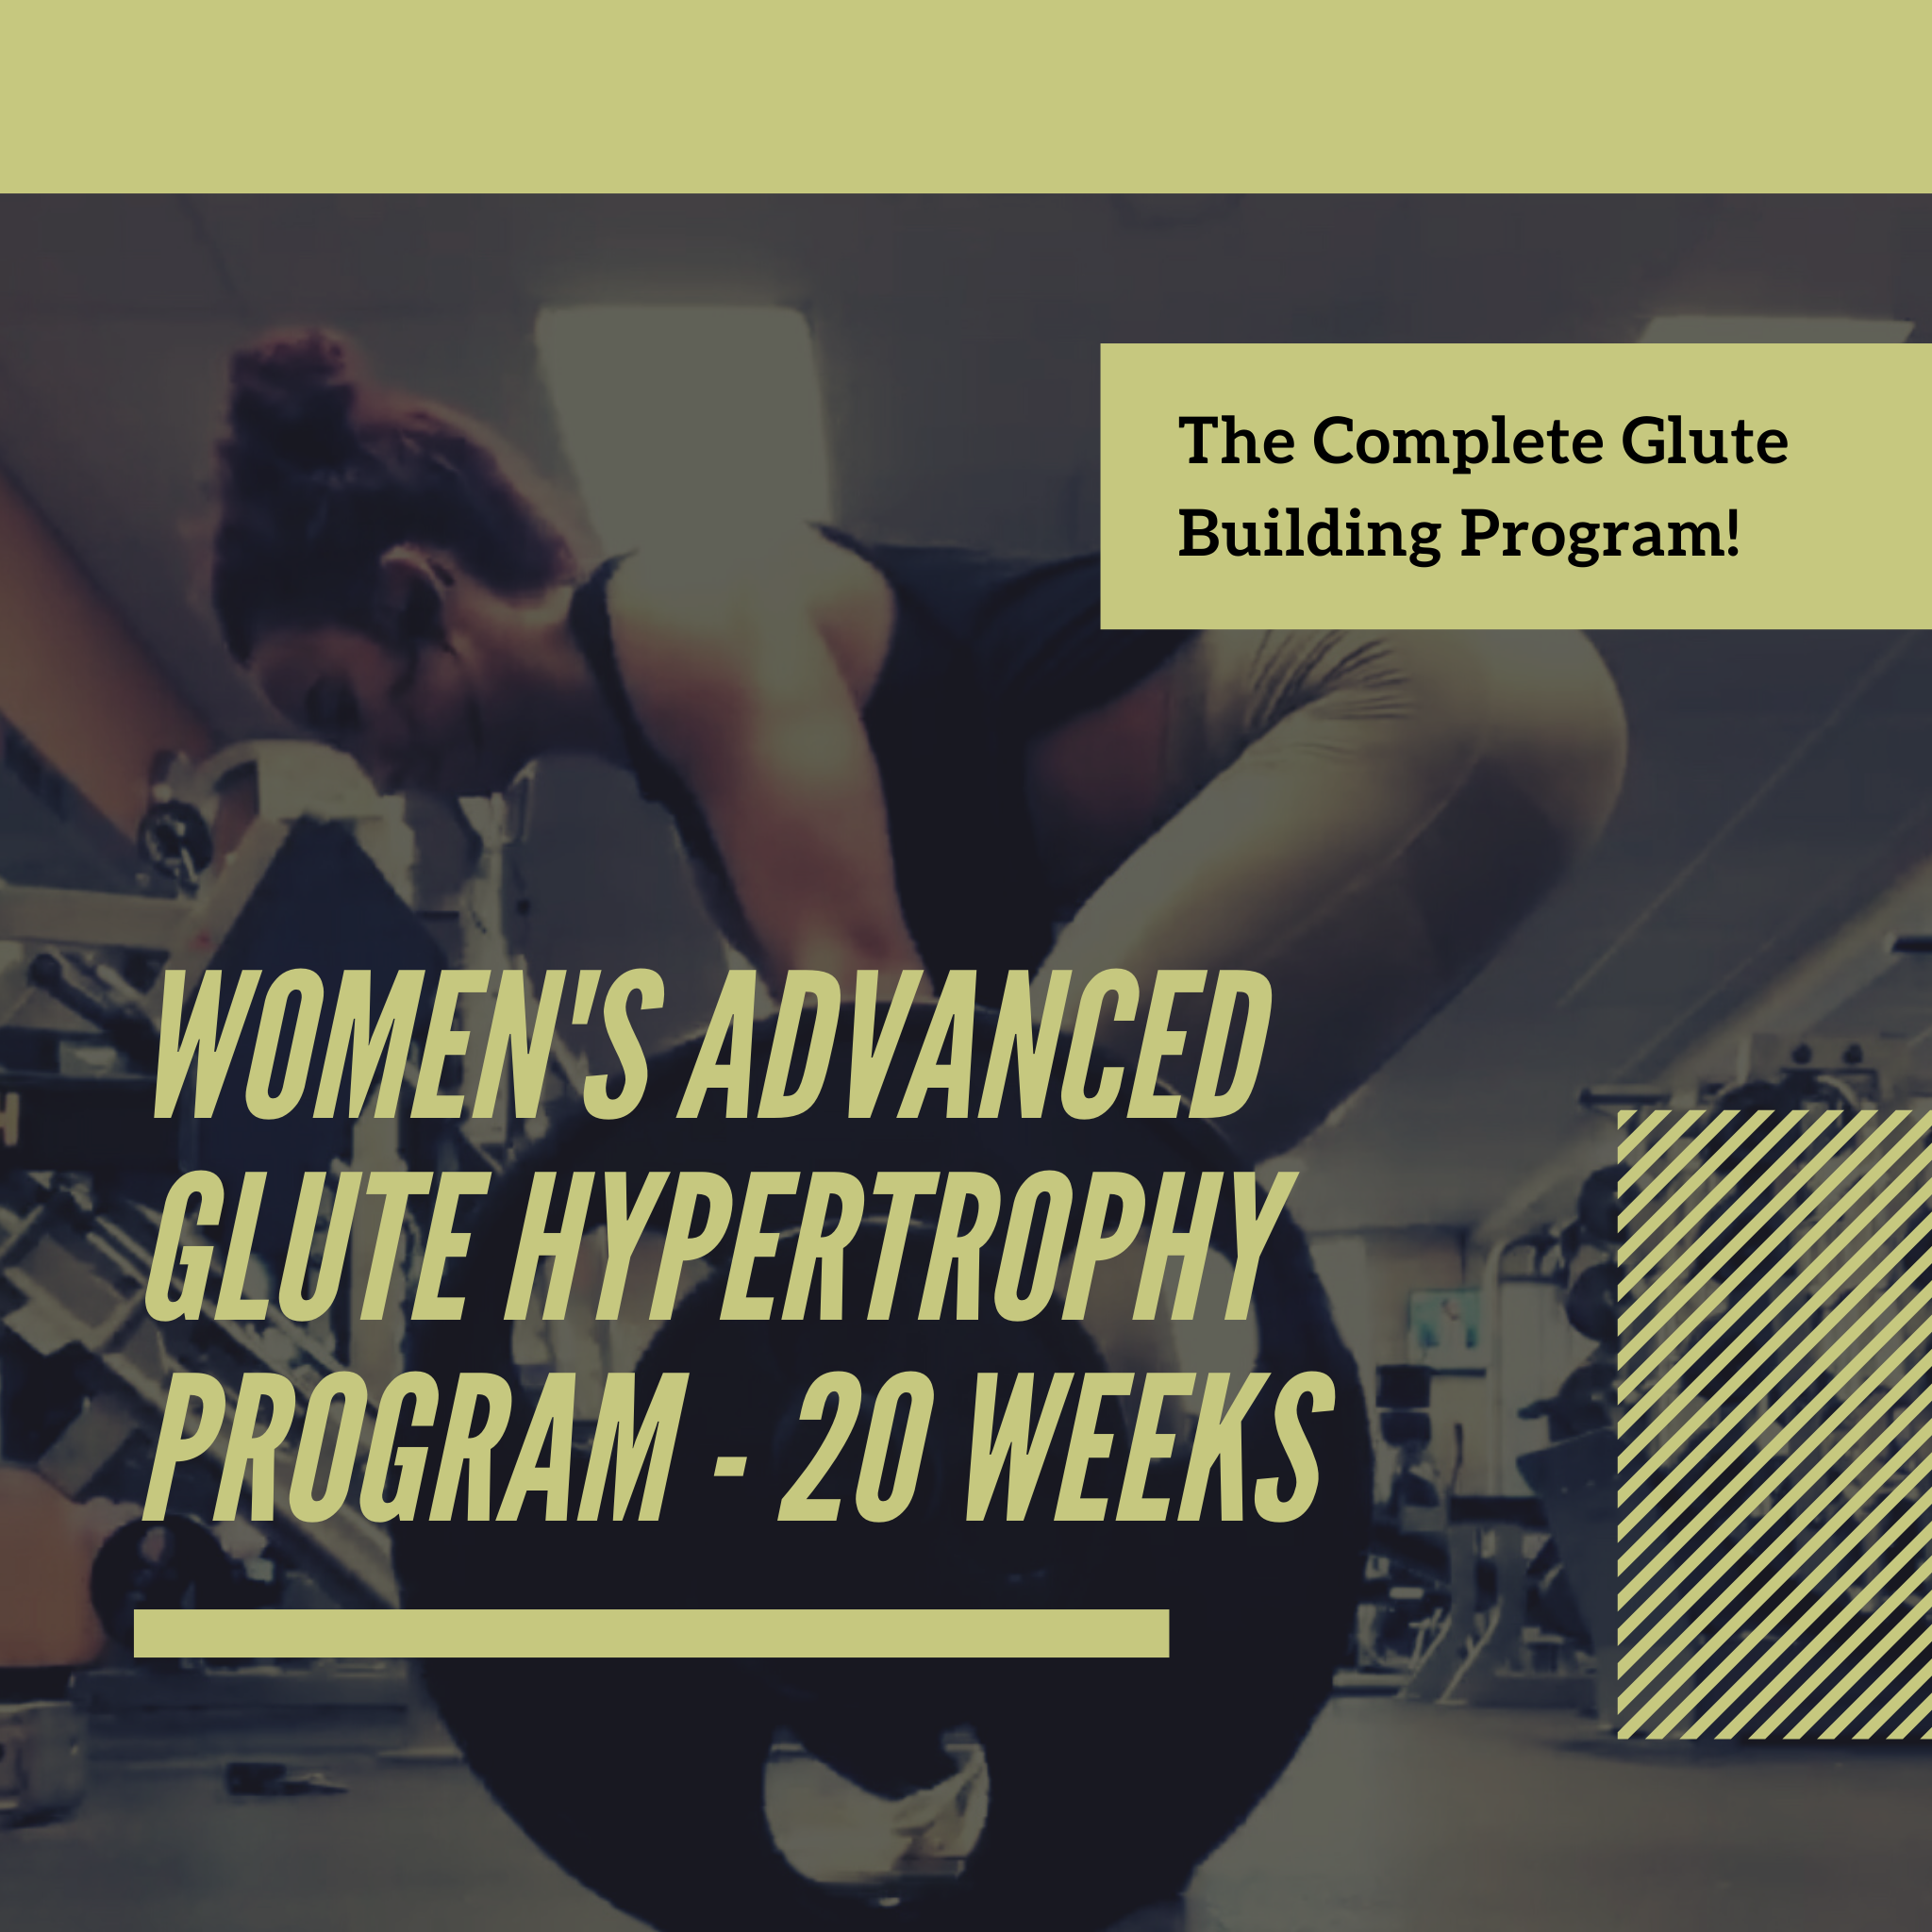 Women's Advanced Glute Hypertrophy Program - 20 Weeks